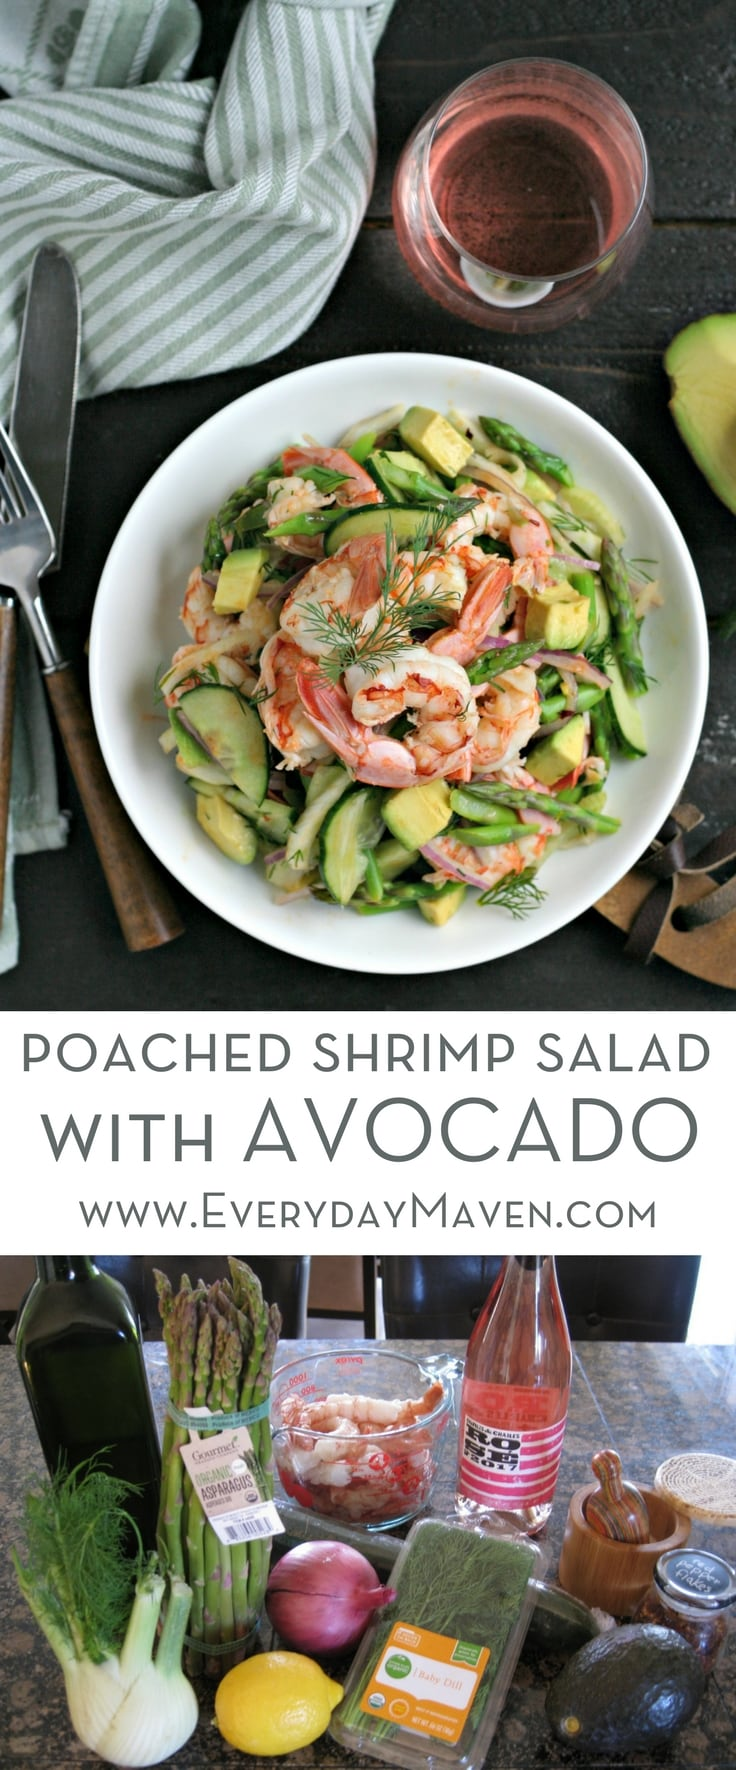 This quick Gluten Free and Low Carb Poached Shrimp Avocado Salad is loaded with Spring Vegetables and a Citrus Dressing. Perfectly paired with Washington State Rose!